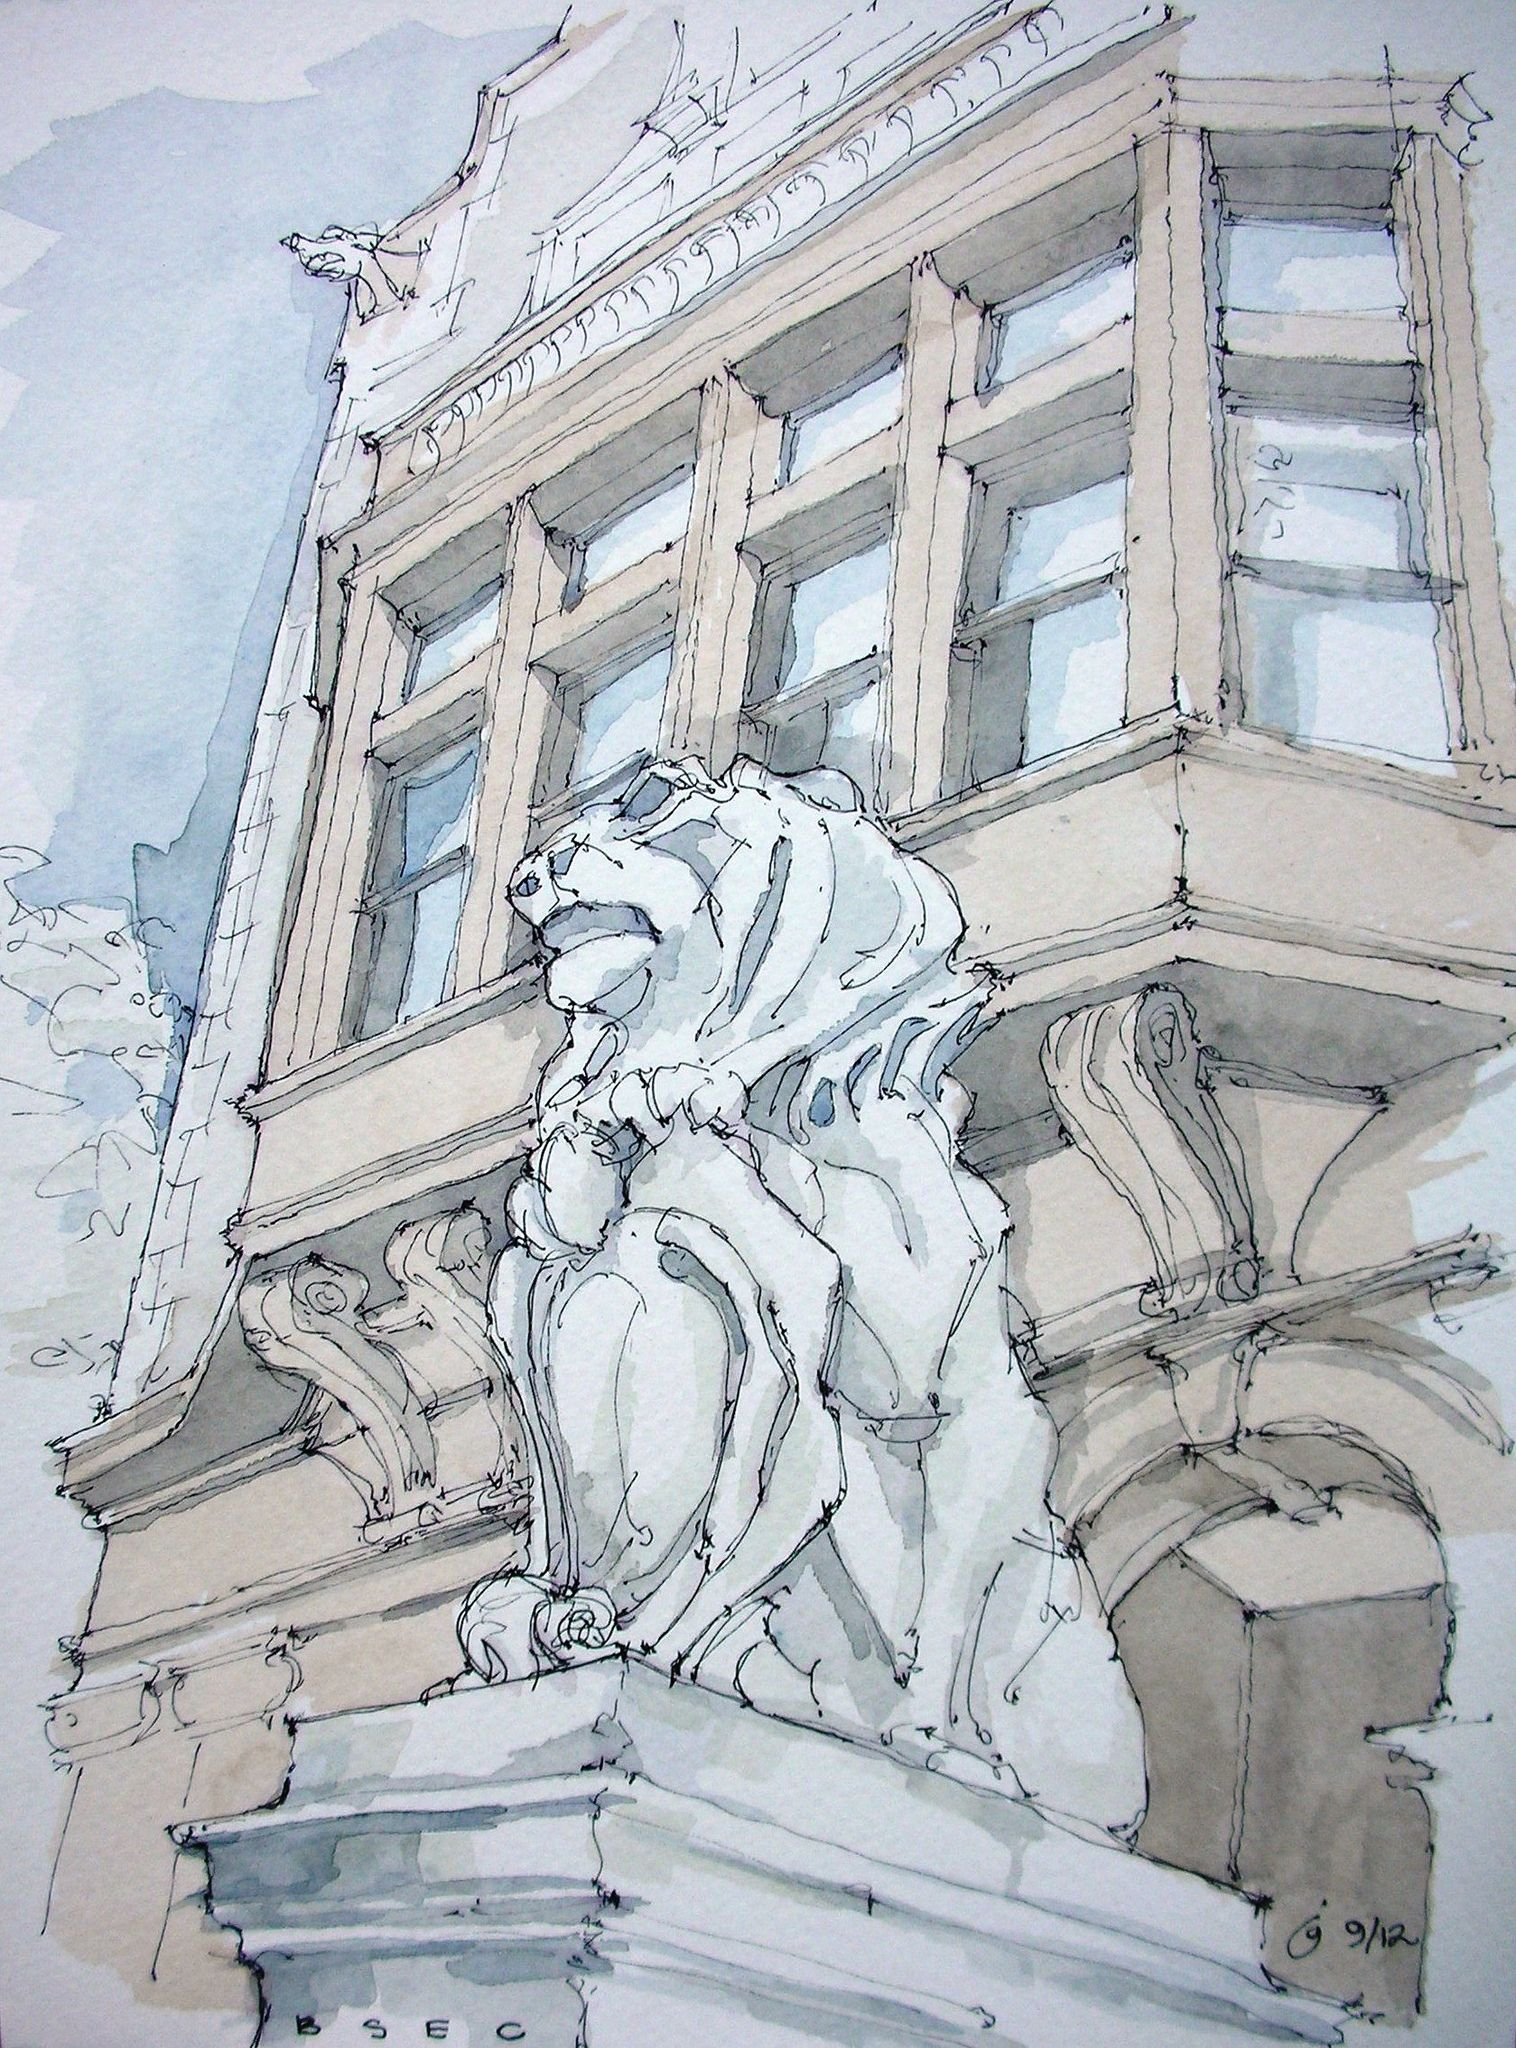 https://flic.kr/p/d4wt9d | Brooklyn Society for Ethical Culture | Prospect Park West, Park Slope, Brooklyn. Ink and watercolor freehand sketch on location. Lion on entry pier with front facade of building rising behind. Nice to be back sketching, finally.